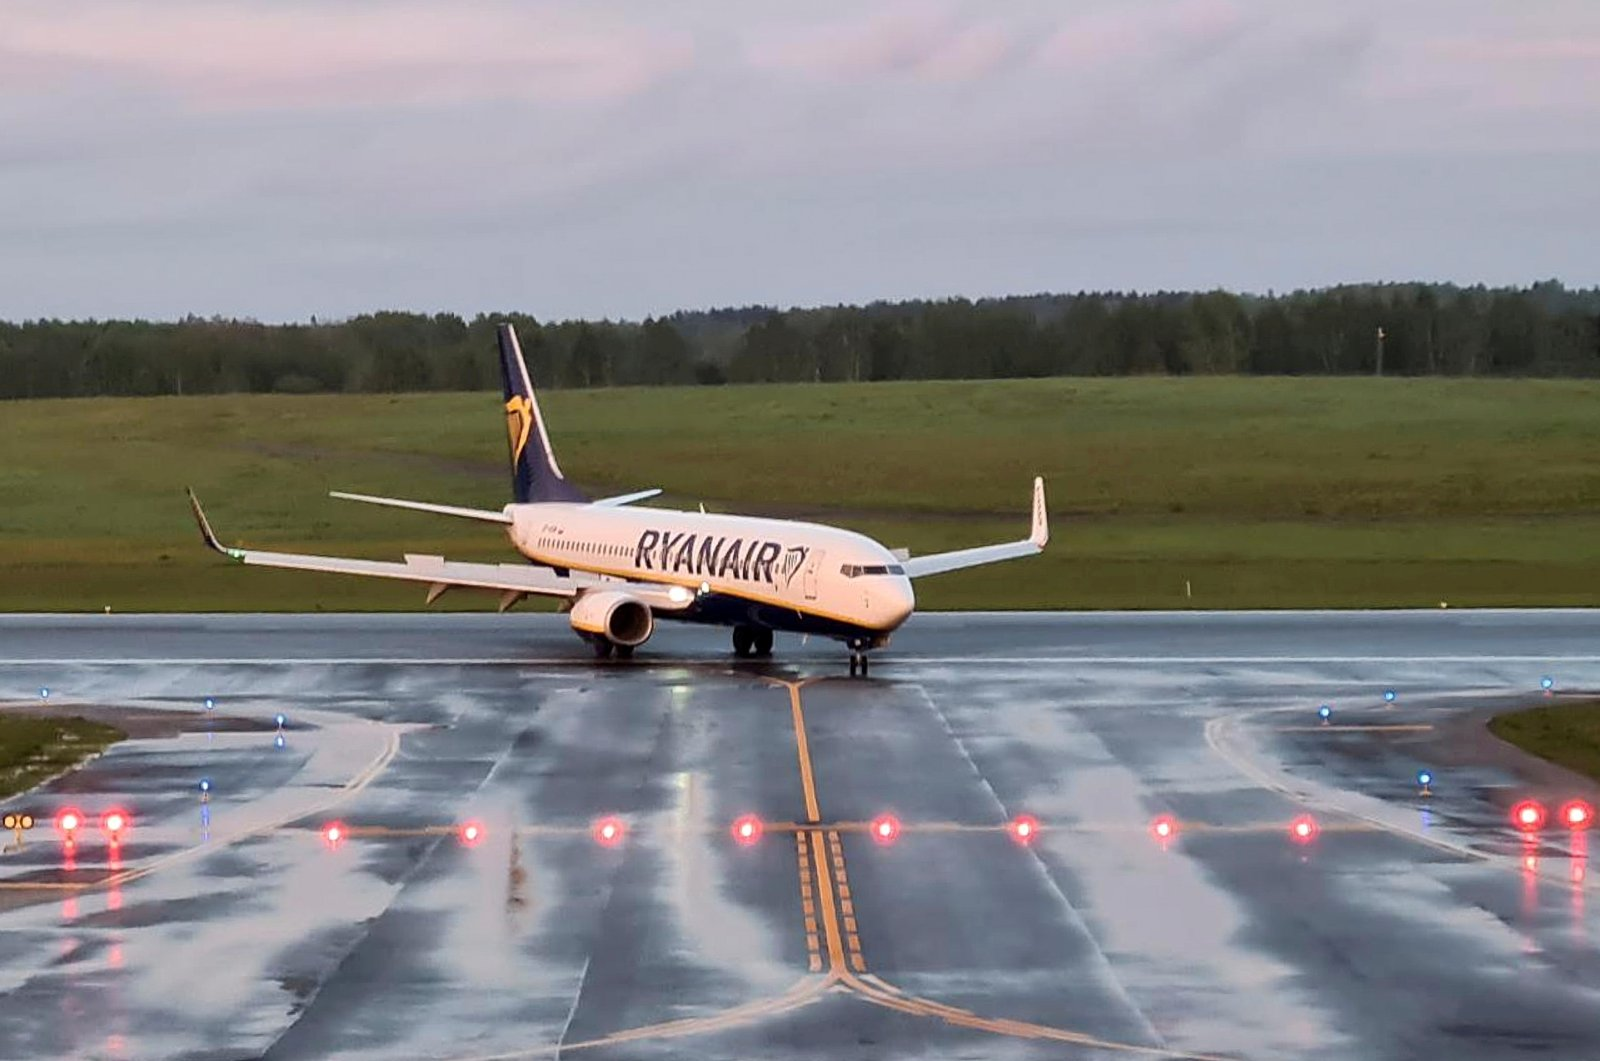 A Ryanair aircraft, which was carrying Belarusian dissident journalist Roman Protasevich and diverted to Belarus, where authorities detained him, lands at Vilnius Airport in Vilnius, Lithuania May 23, 2021. (Reuters Photo)